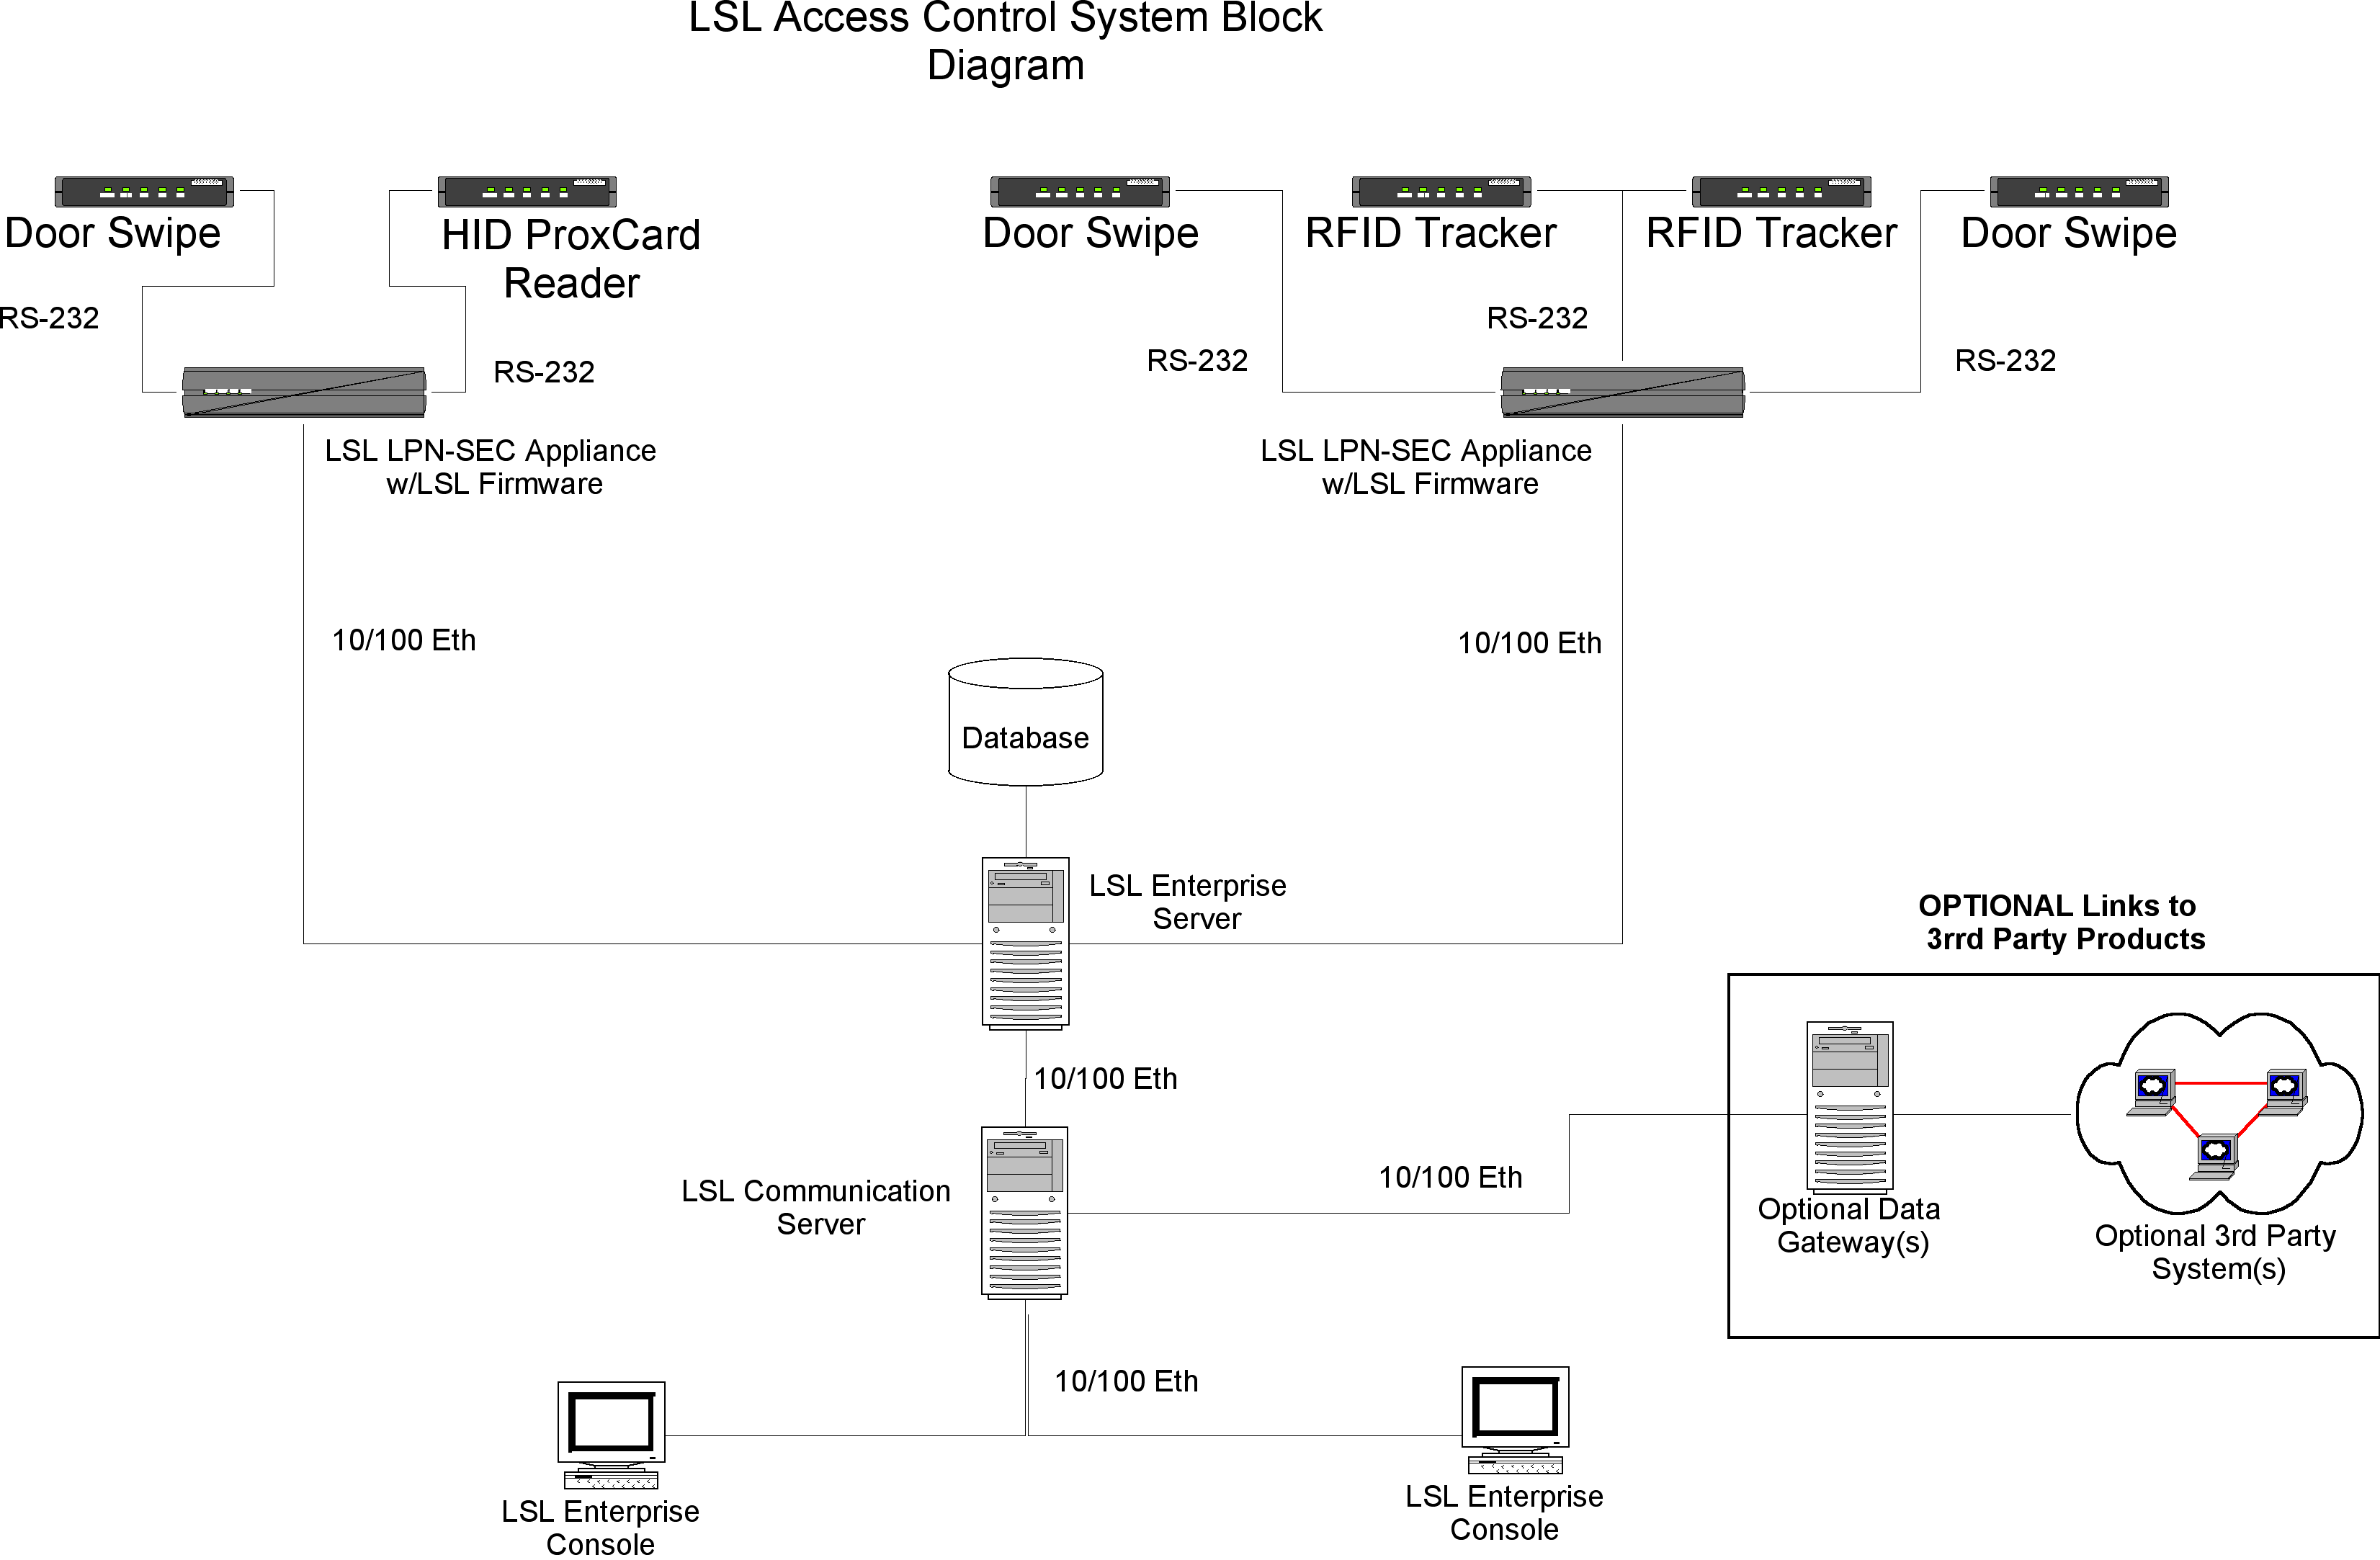 LSL access control system diagram